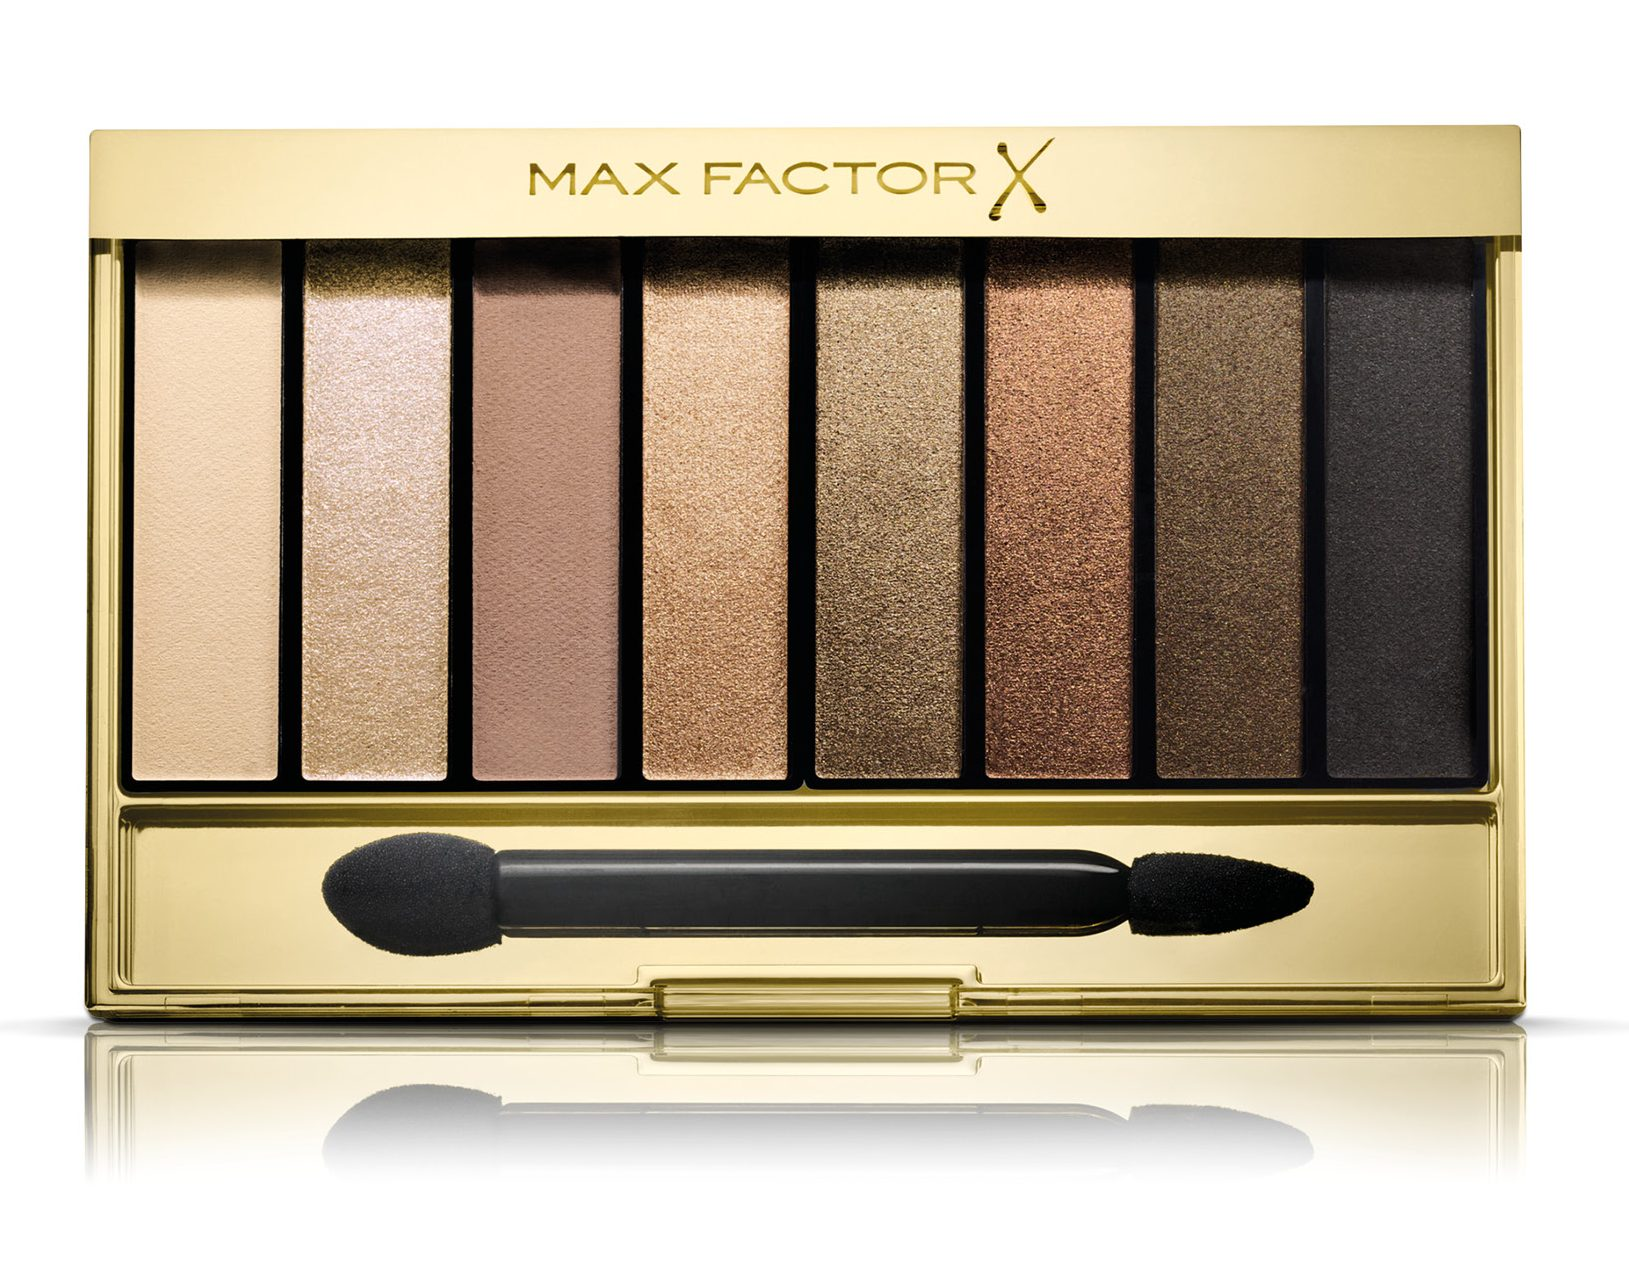 Sienna Miller make-up pallette nude øjenskygge max factor (Foto: Sæther)